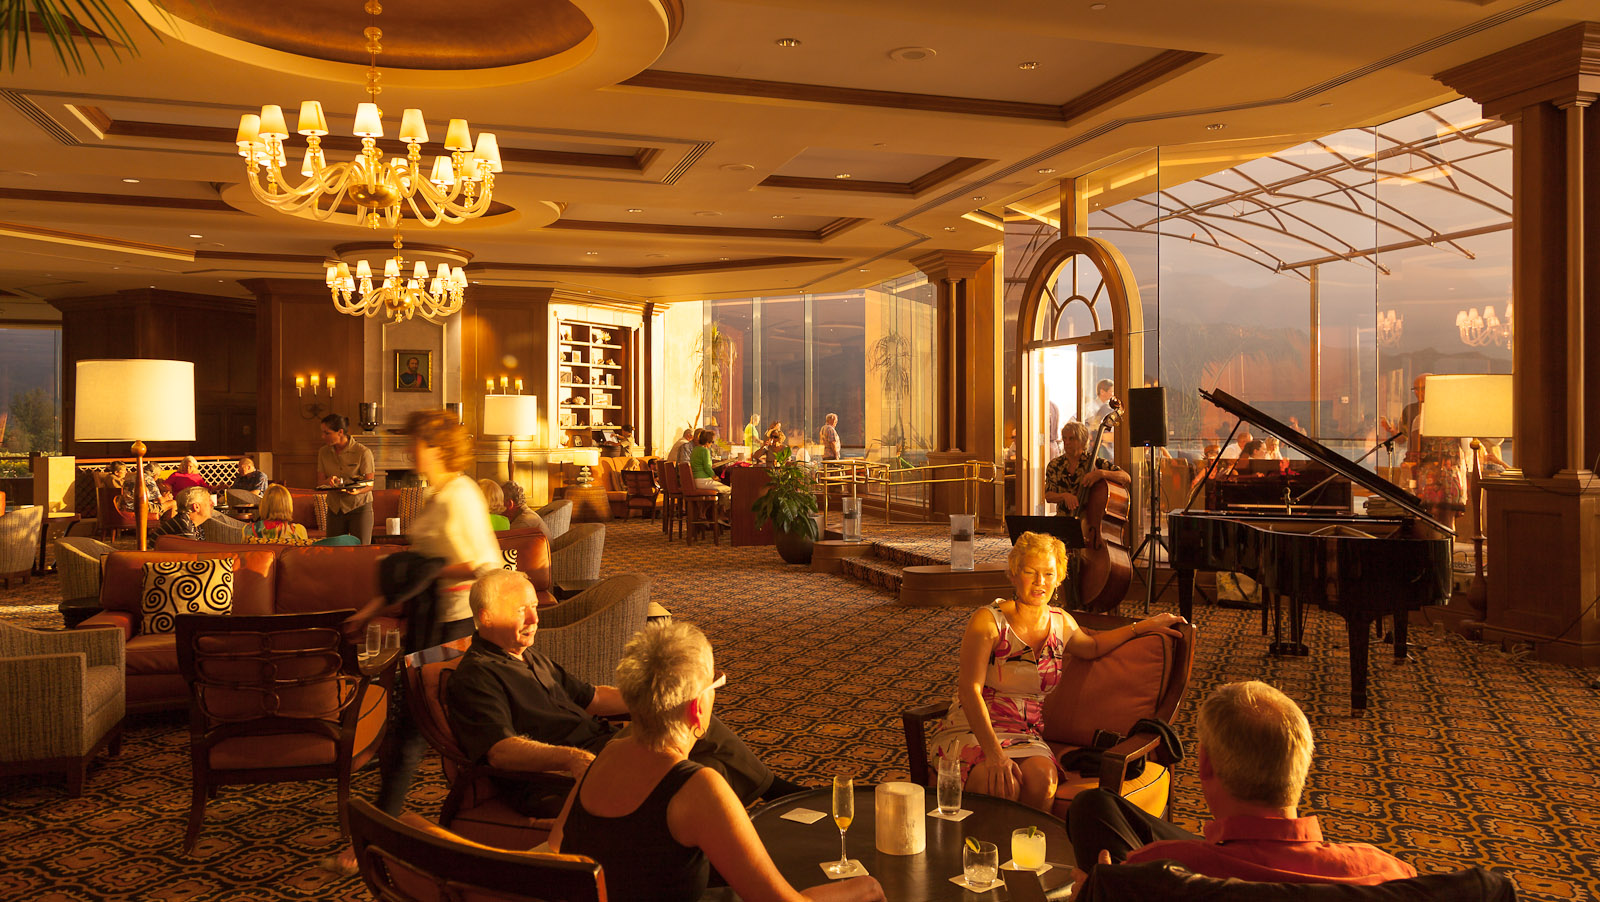 Lobby Bar area of the St. Regis Hotel in Princeville, Kaui, Hawaii. Photo © 2012 Jay Graham, all rights reserved